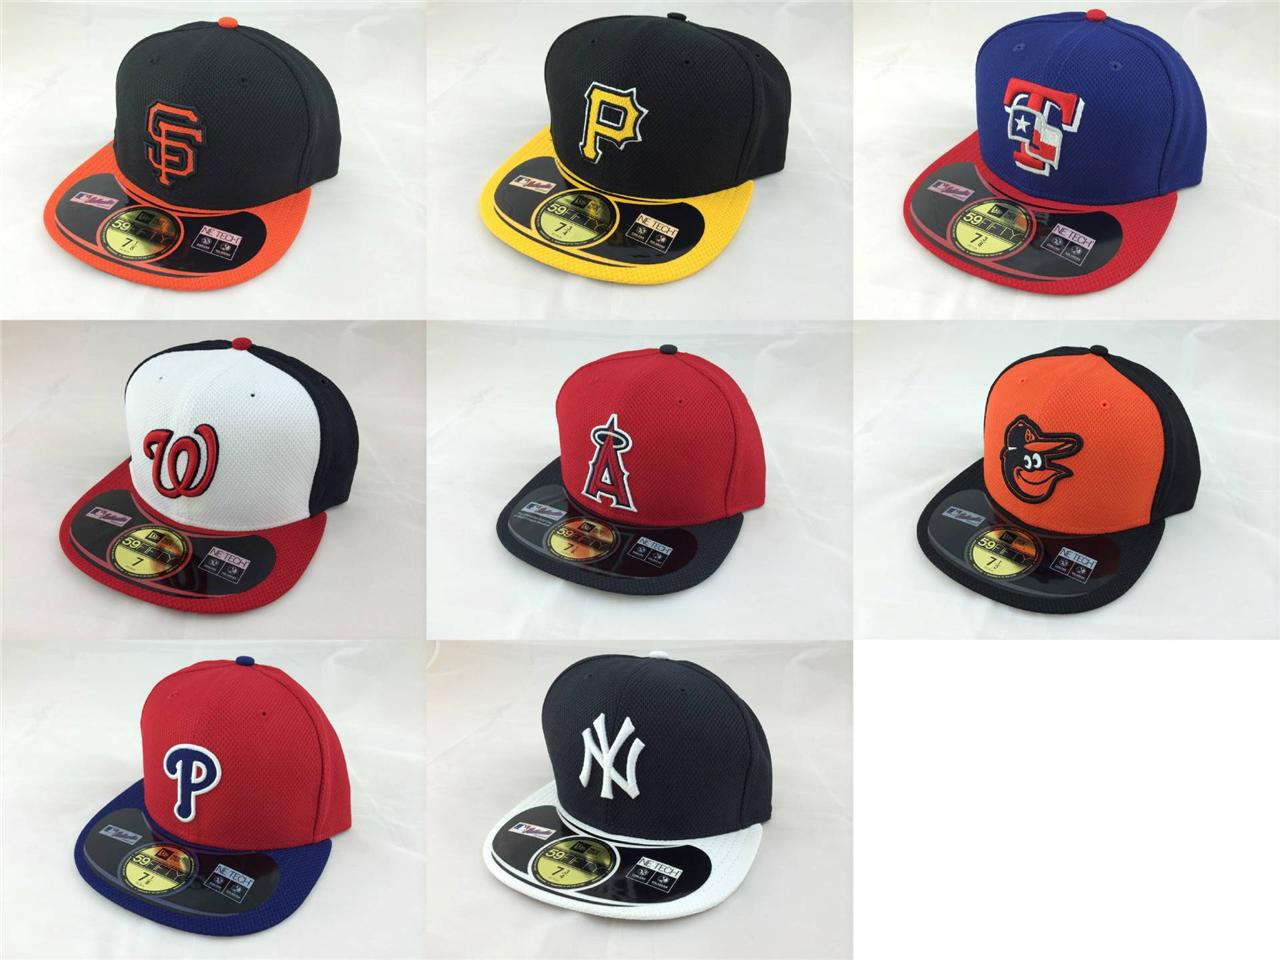 c9d68e4ef Details about New Era MLB 59Fifty 5950 Diamond Era Fitted Cap Hat Authentic  Collection